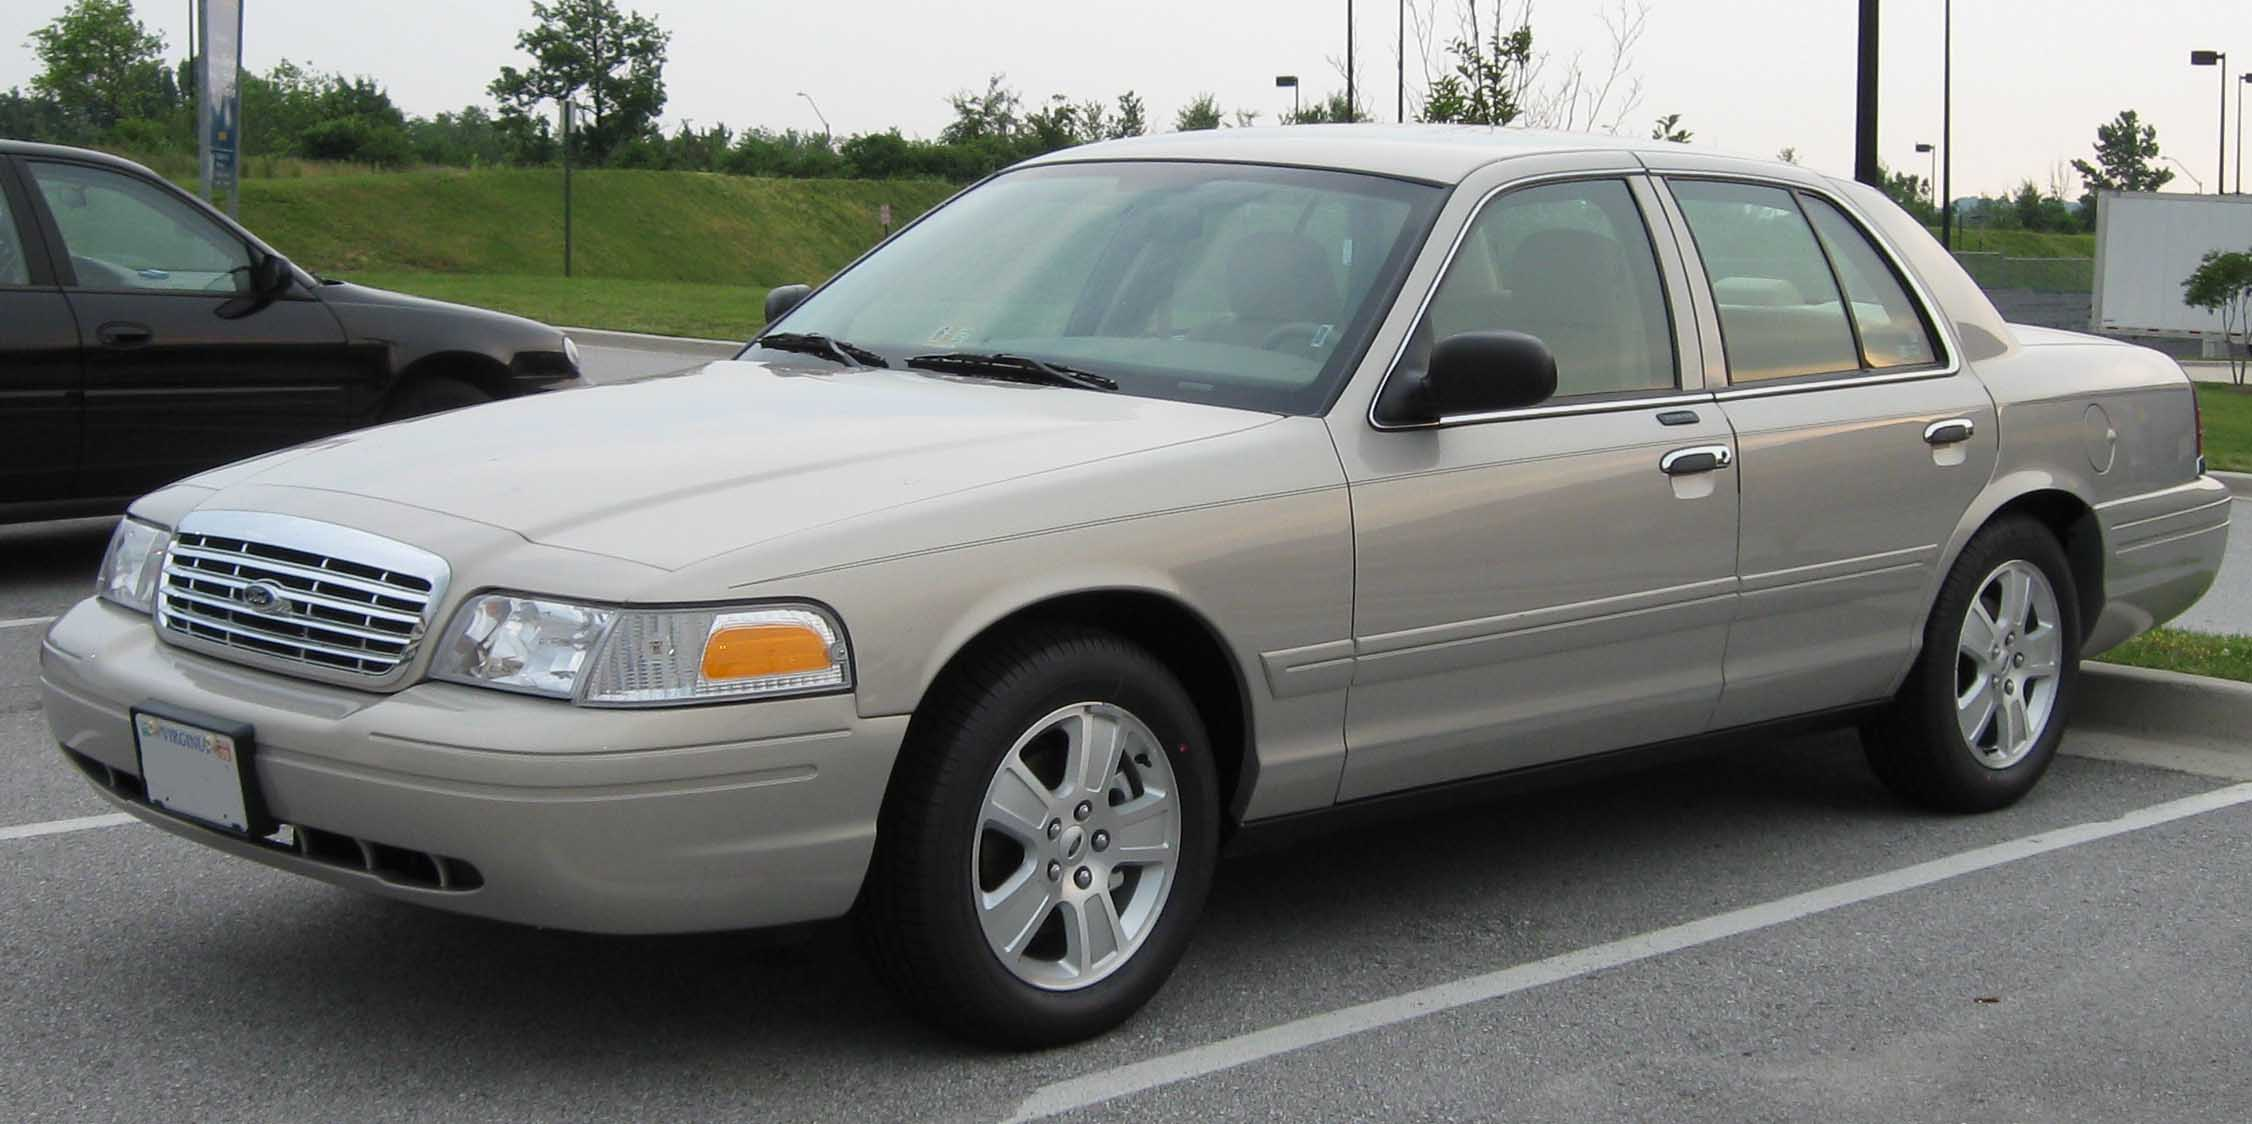 Ford Crown Victoria: 06 фото